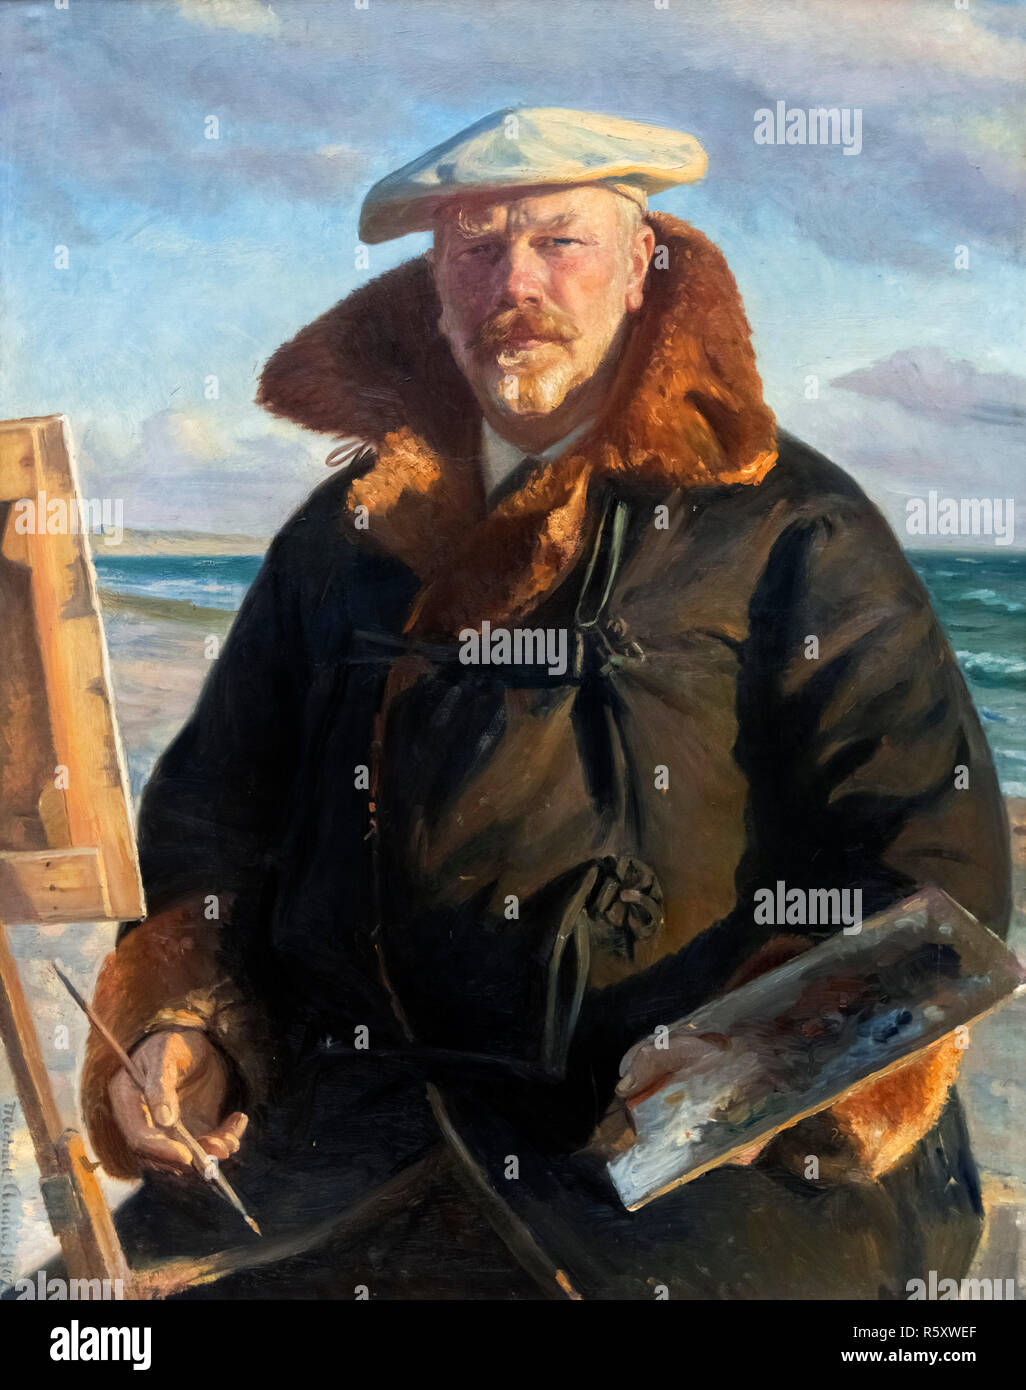 Self Portrait by Michael Ancher (1849 -1927), oil on canvas, 1902 - Stock Image